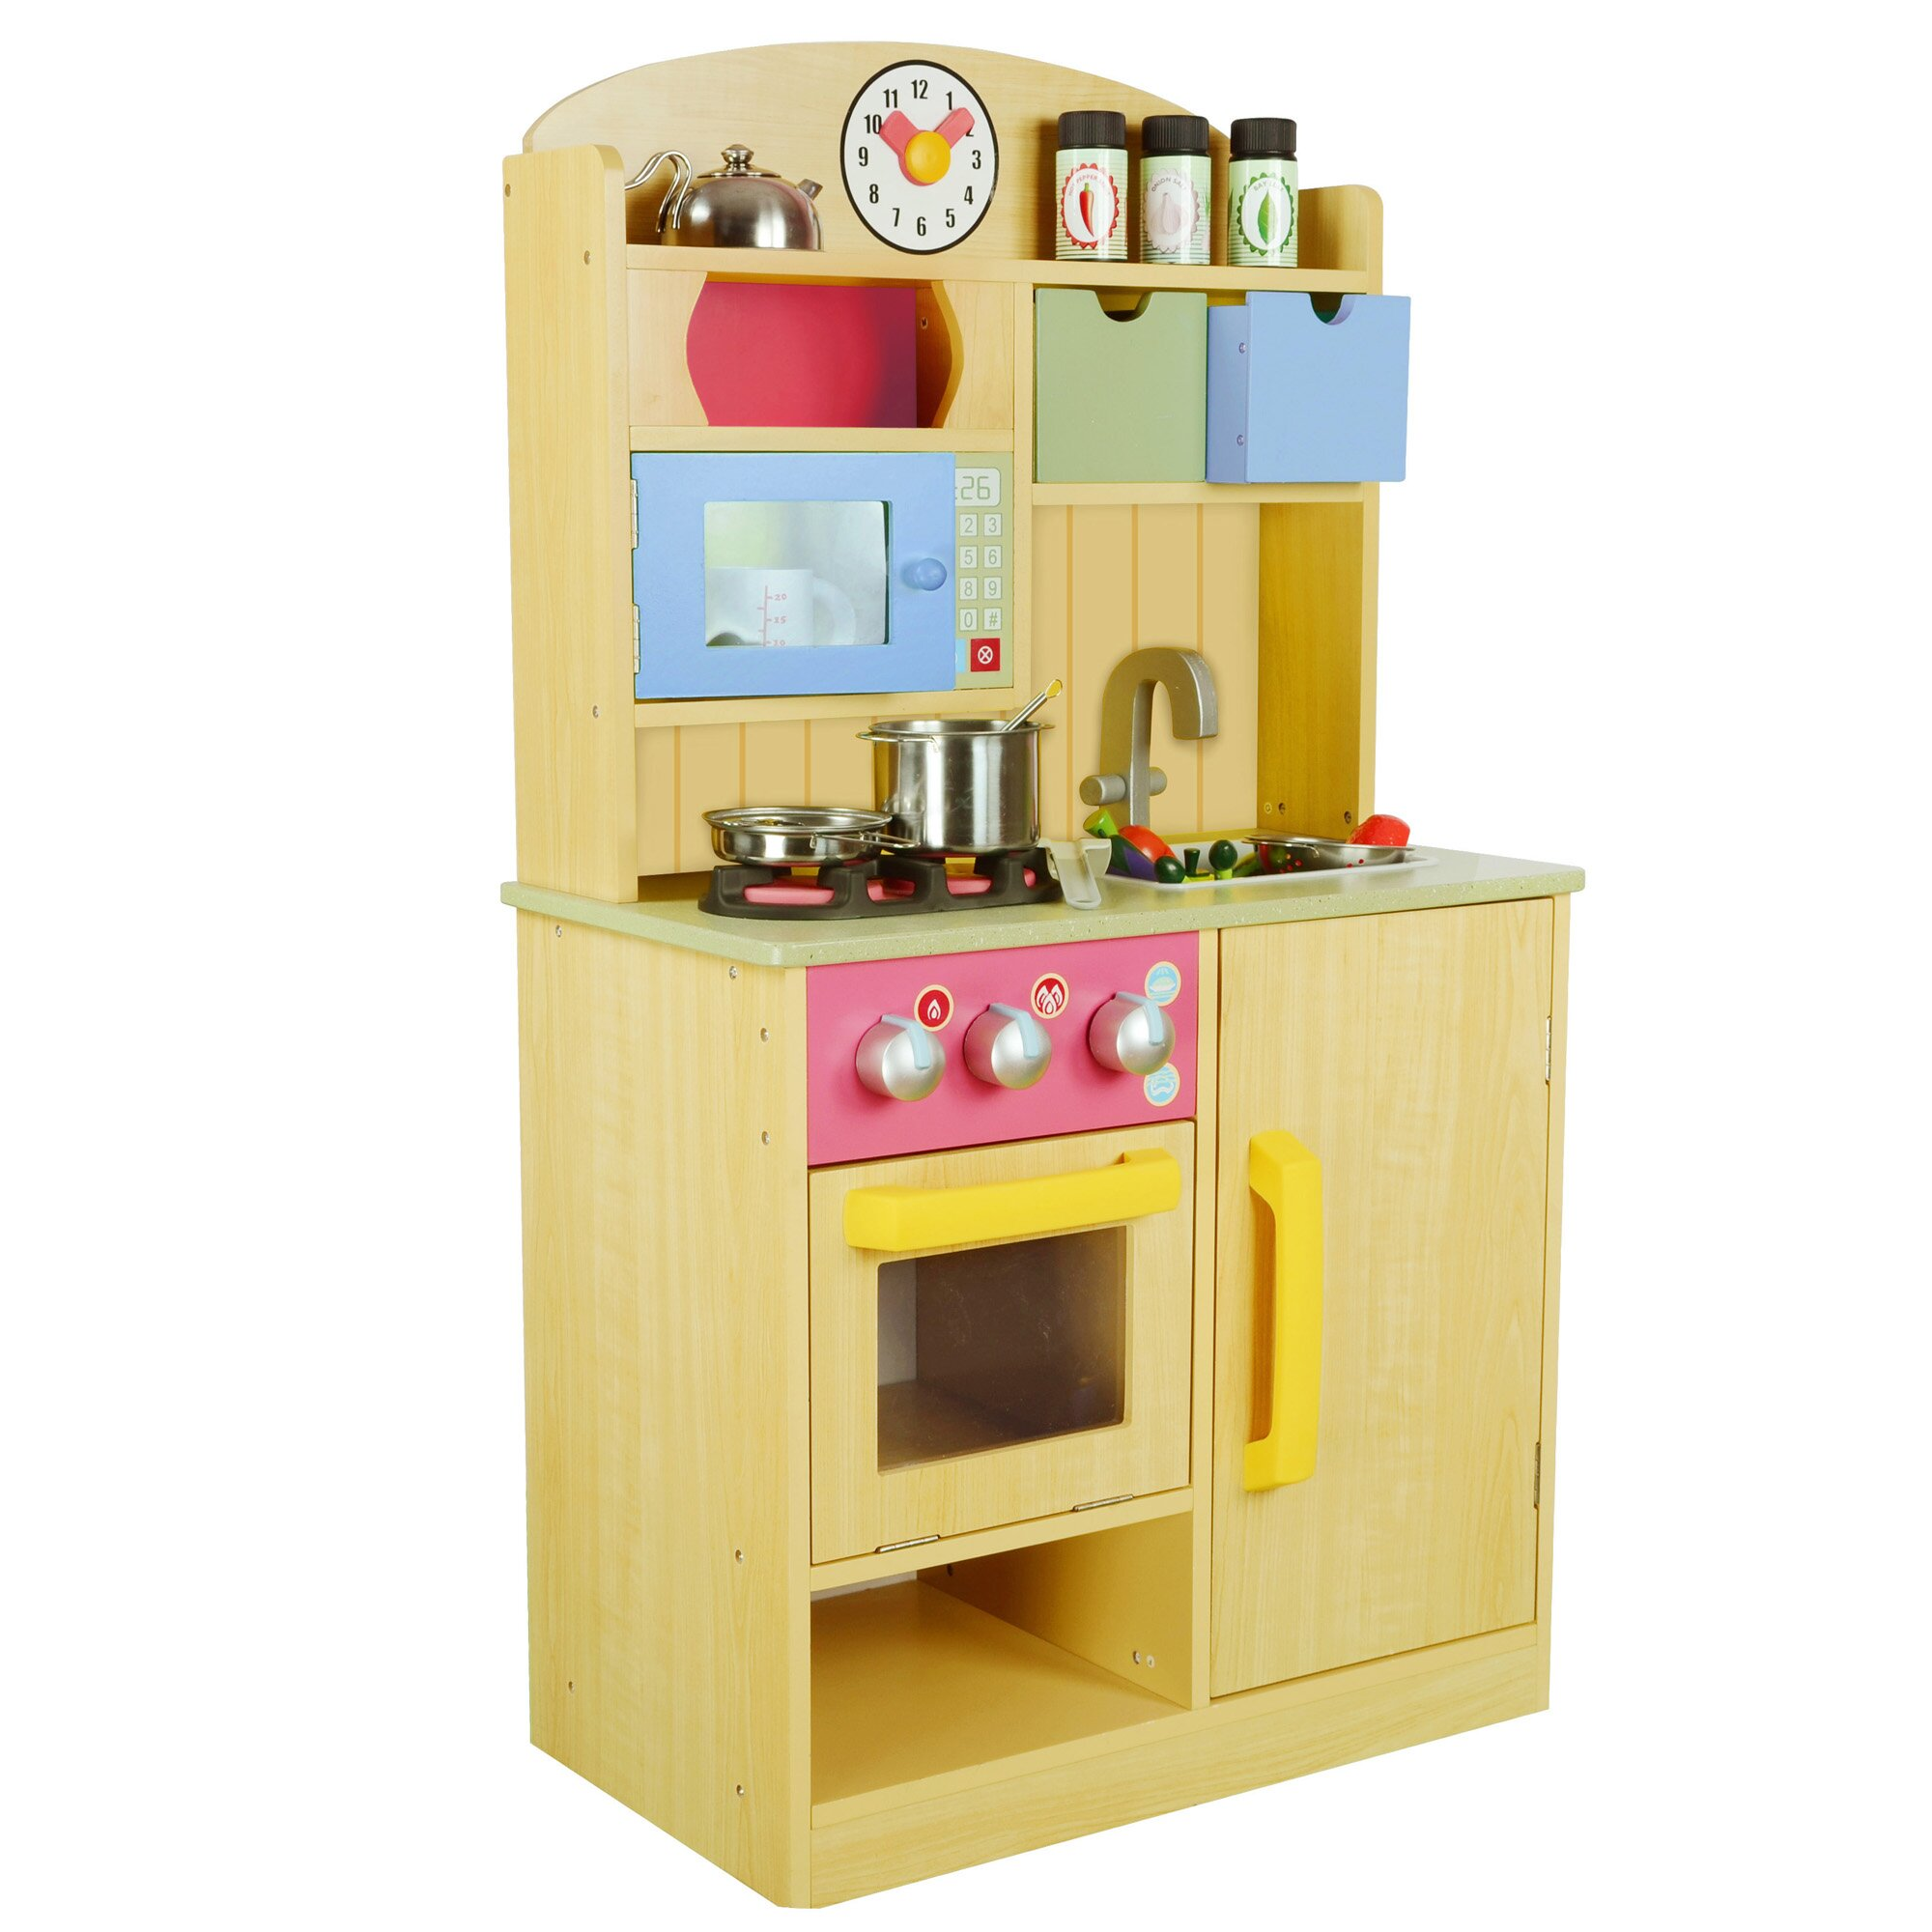 Wooden Kitchen Accessories ~ Teamson kids little chef wooden play kitchen with